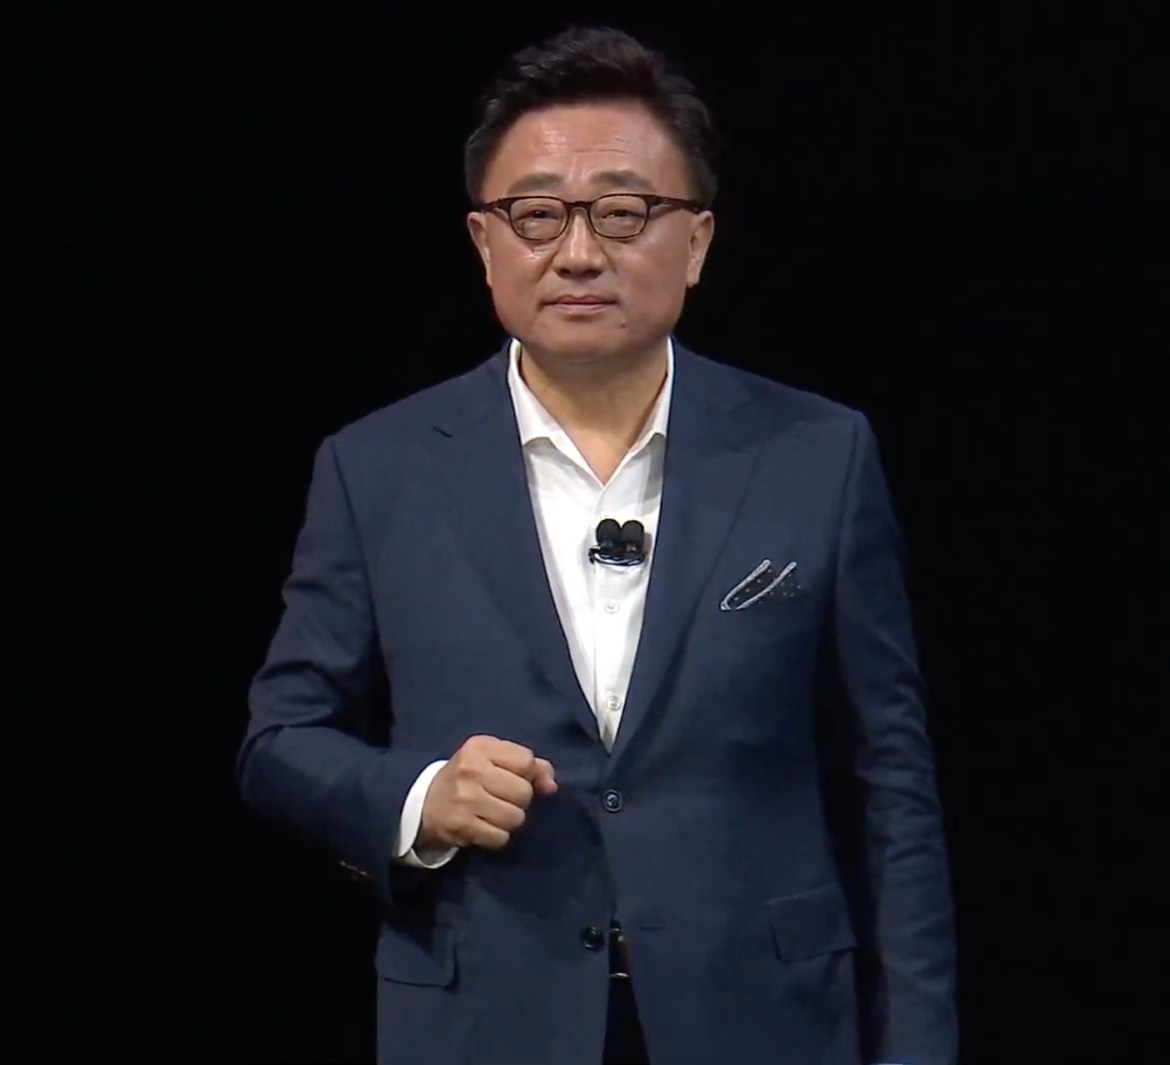 Dj Koh the CEO of Samsung Electronics